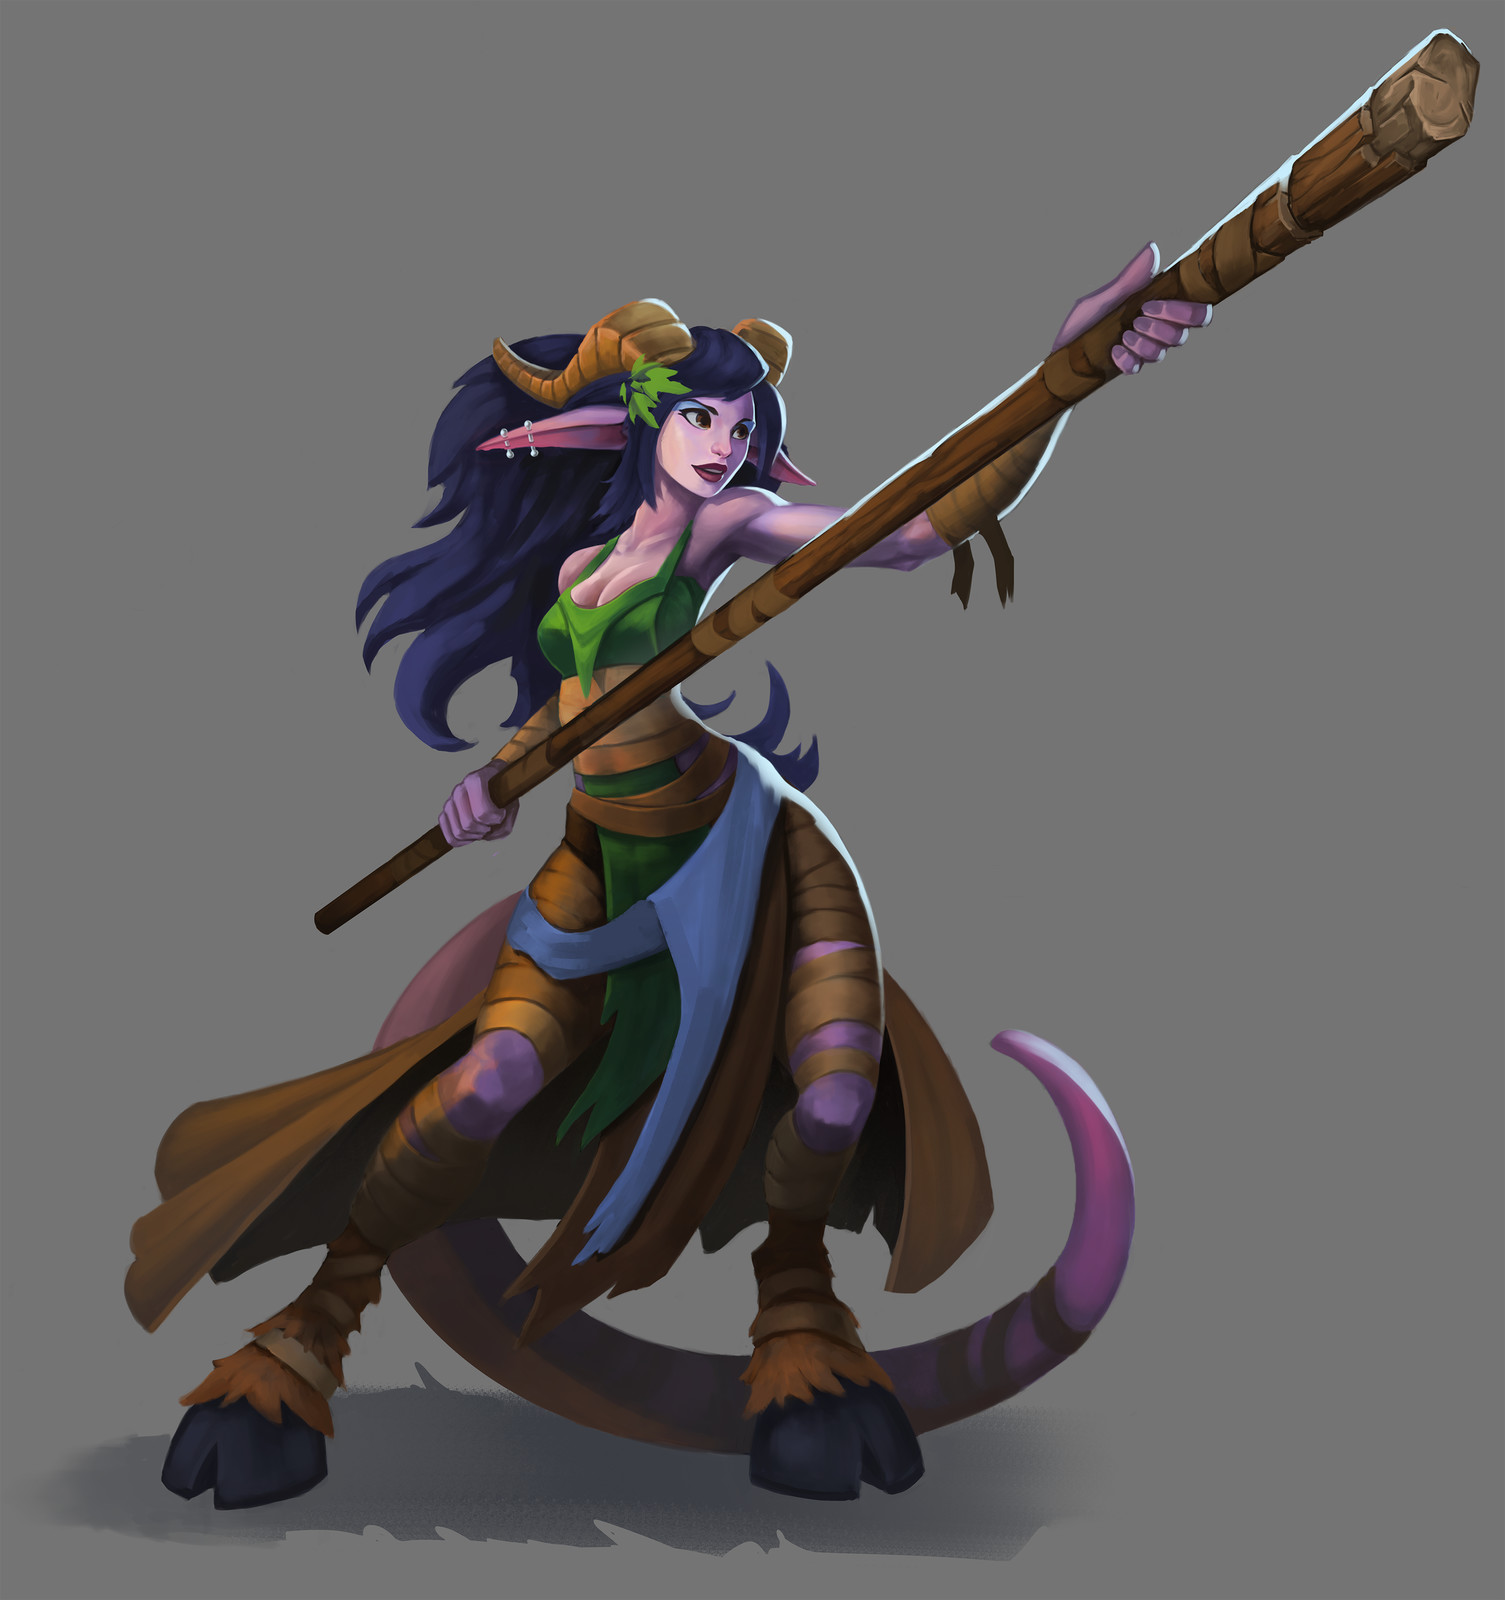 Fantasy fighter girl w/ staff